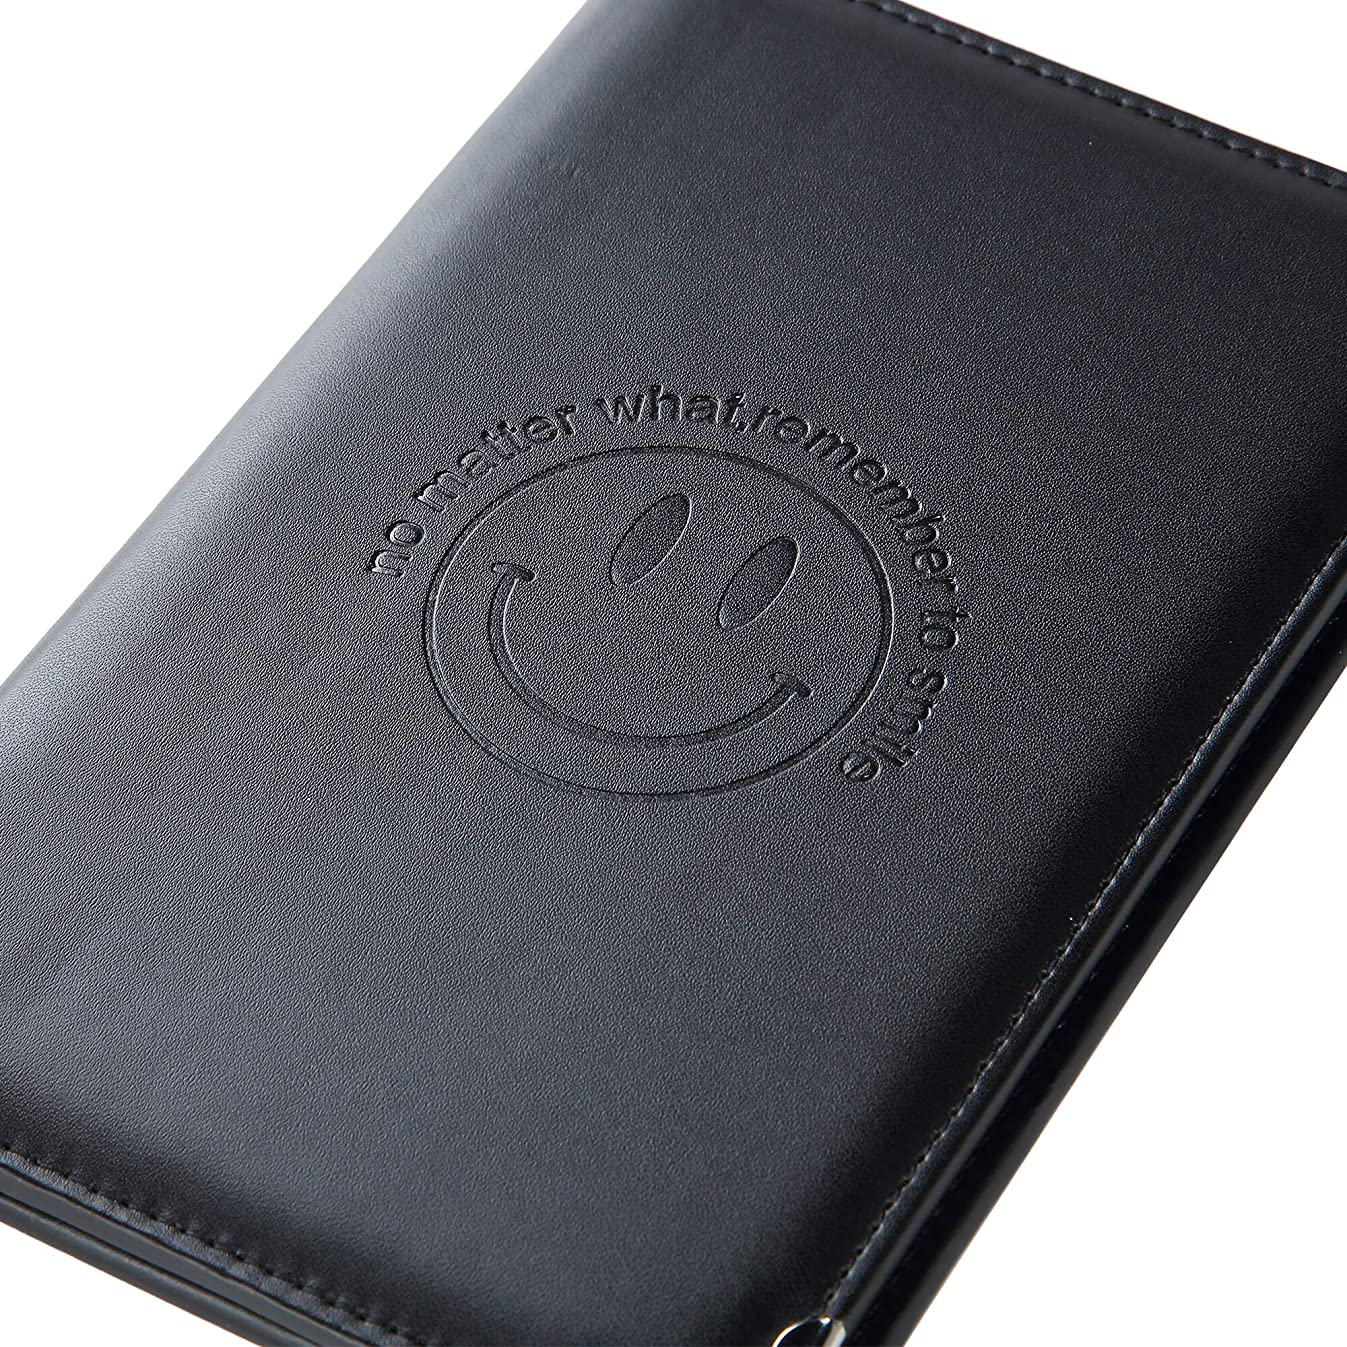 Leather Server Book Organizer - for Restaurant Waiter Waitress Waitstaff | Comfortably Fits in Apron | 9 Pockets Includes Zipper Pouch with Pen Holder | Holds Guest Checks, Credit Cards, Money, Order